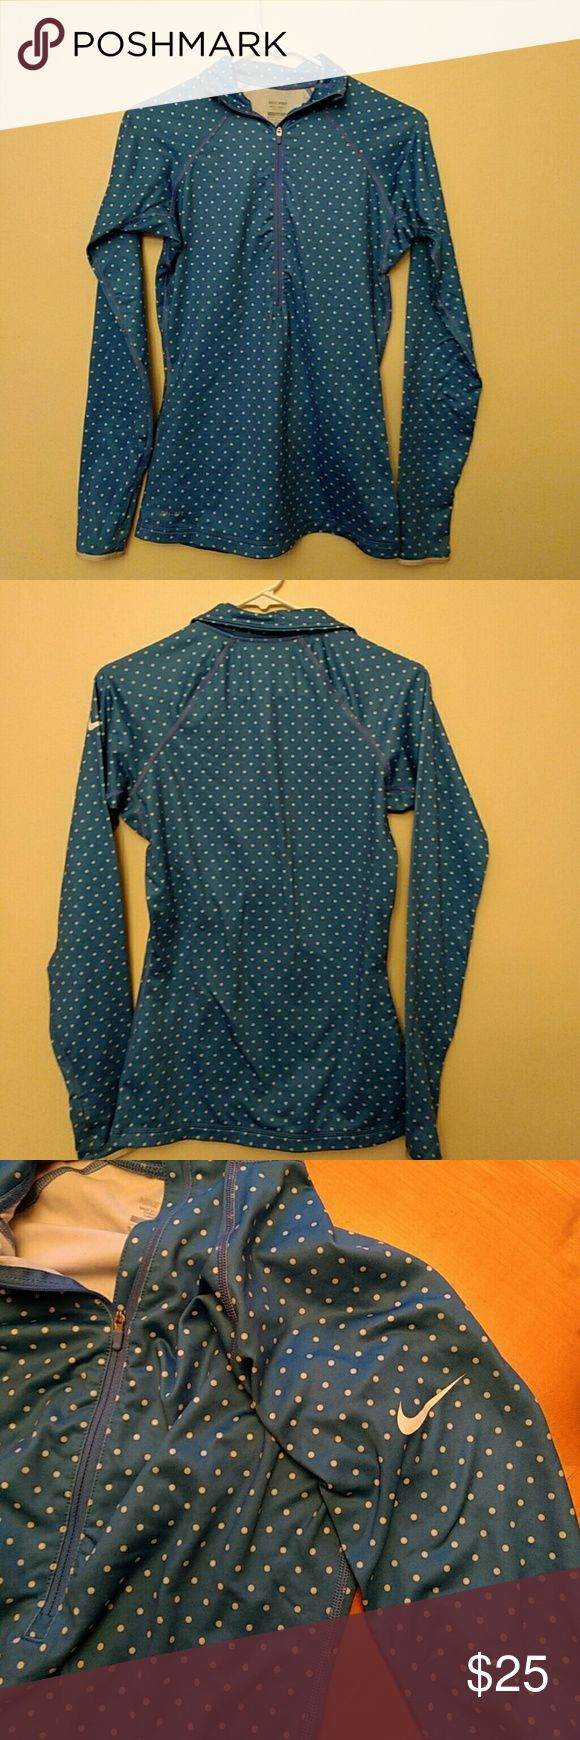 Nike Pro Polka Dot Zip Up Nike pro polka dot long sleeve zip up! In perfect condition, very warm and flattering to an hourglass figure! Nike Tops Sweatshirts & Hoodies